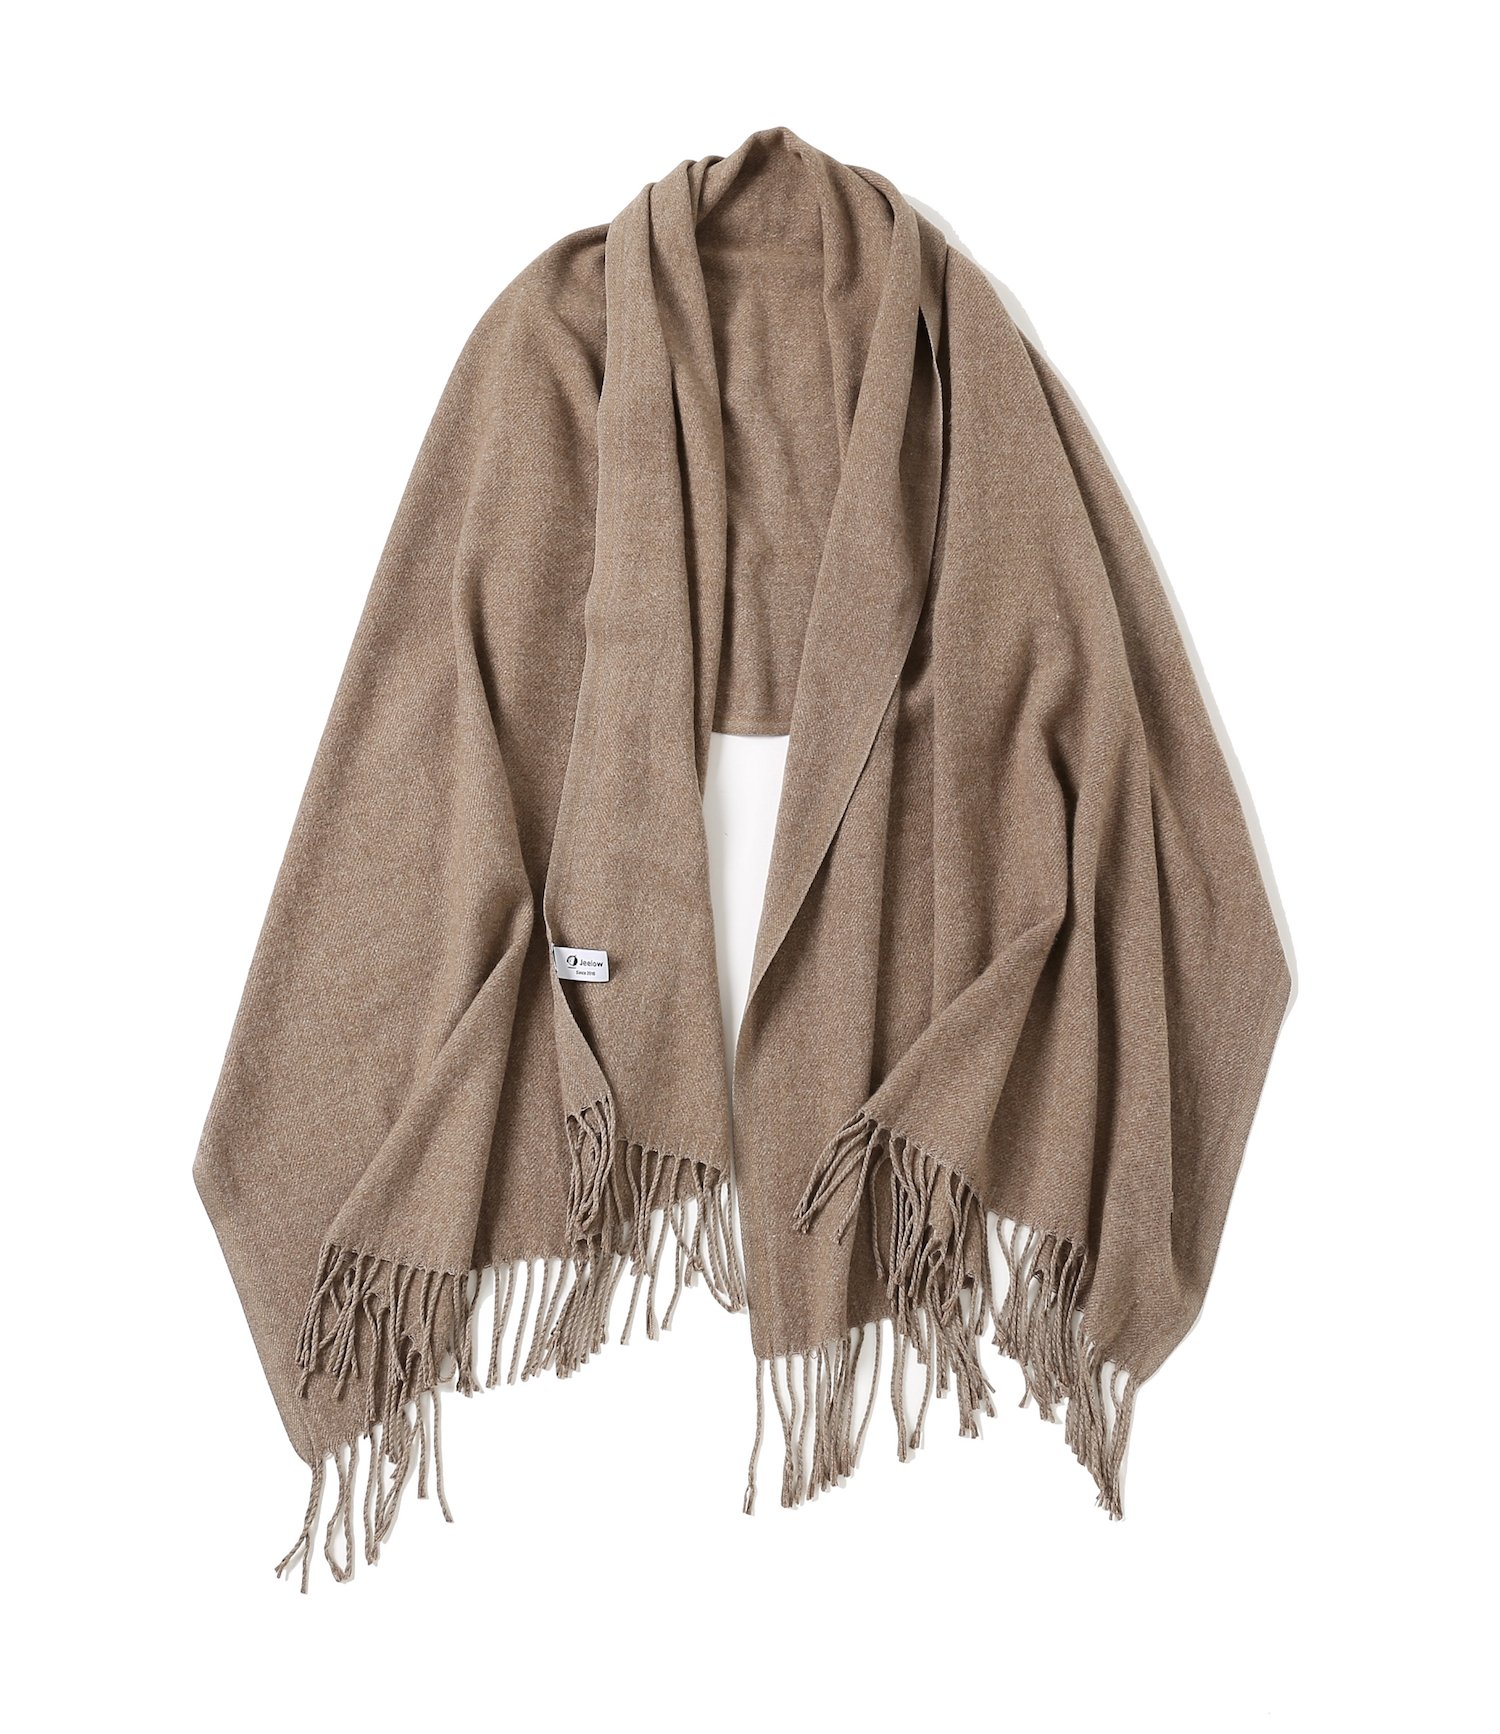 Jeelow Blanket Scarf Shawls Wrap Soft Cashmere Feel Large Scarfs For Men And Women